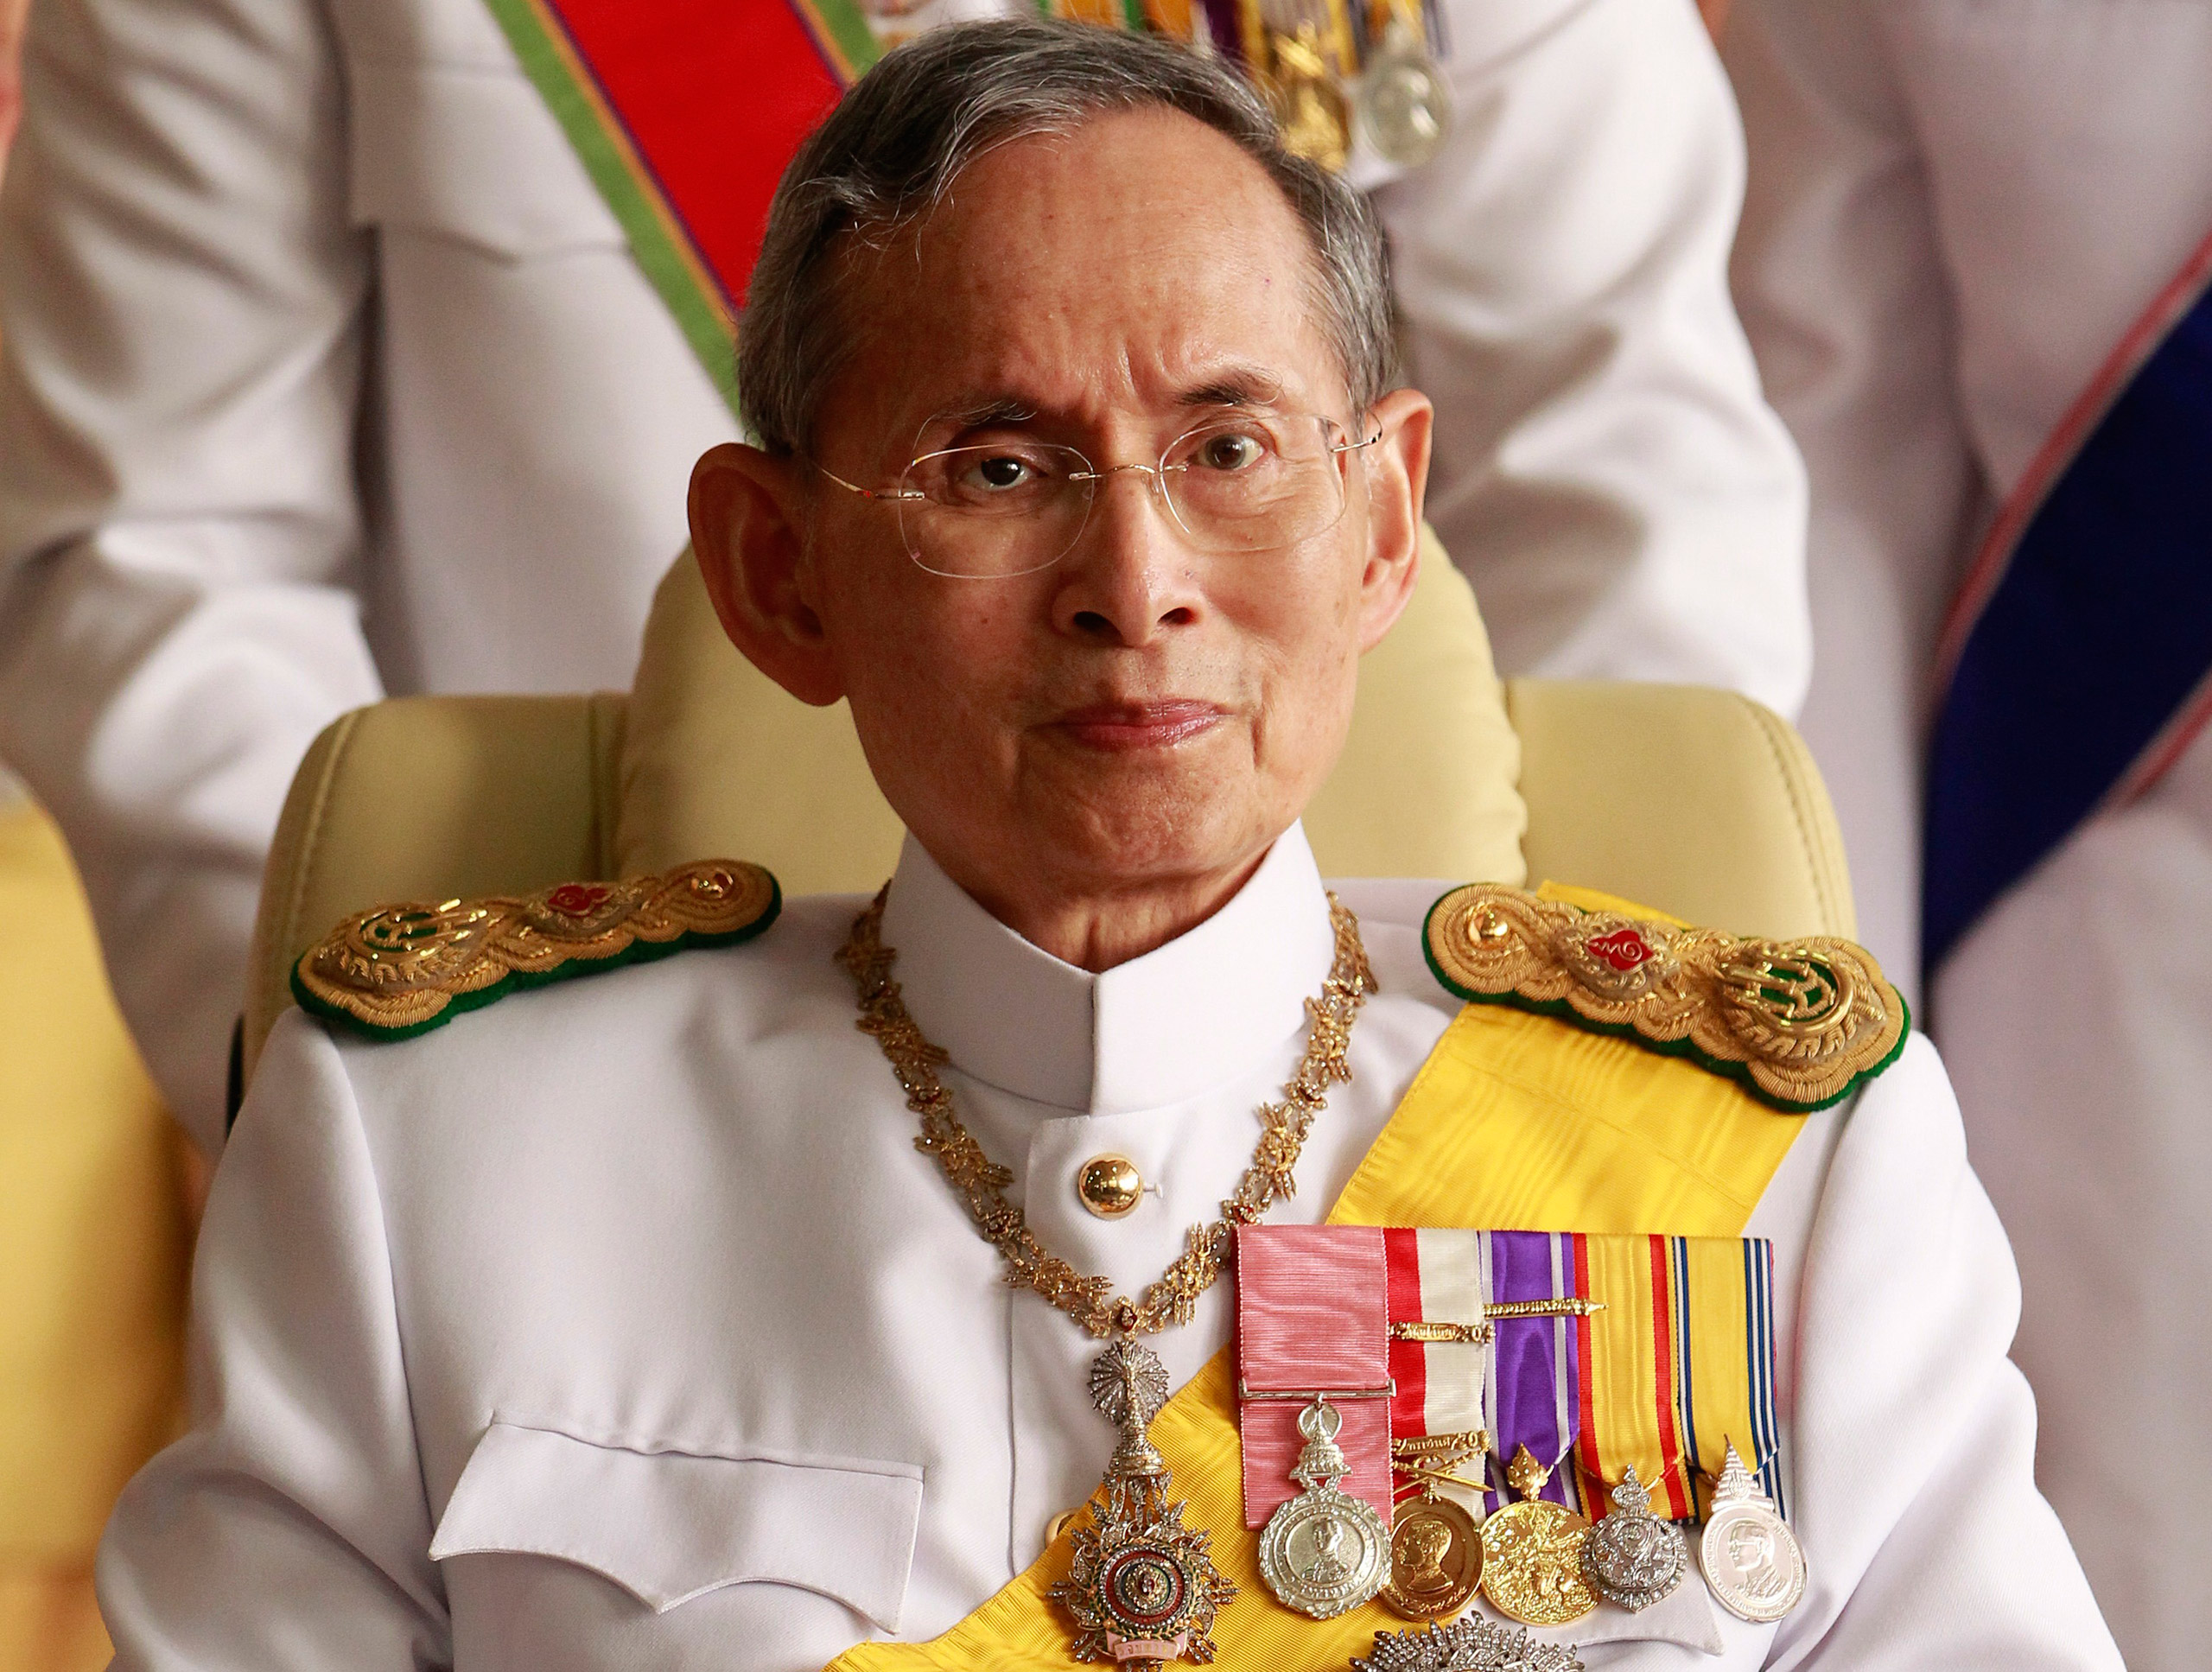 Thailand's King Bhumibol Adulyadej, who was the world's longest-reigning monarch, pictured in 2010 just before his 83rd birthday